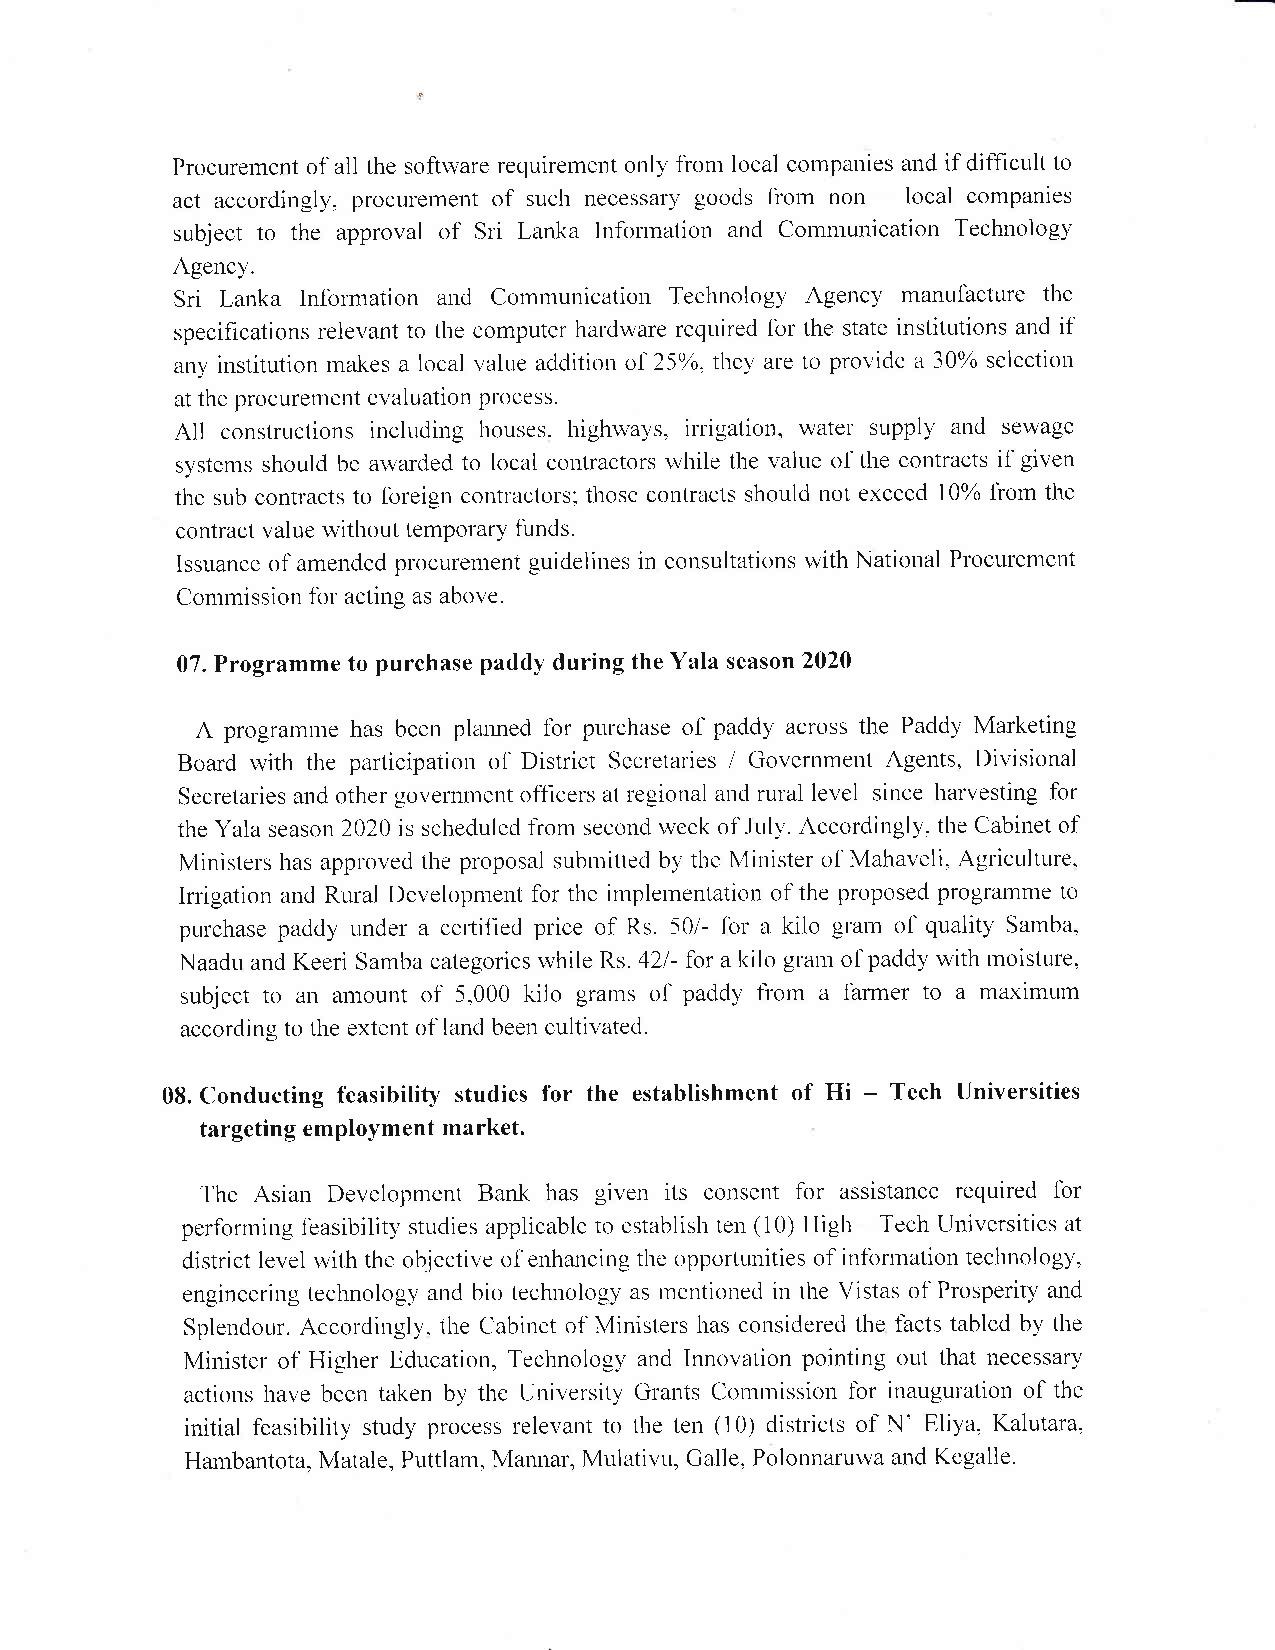 Cabinet Decision on 15.07.2020 English page 003